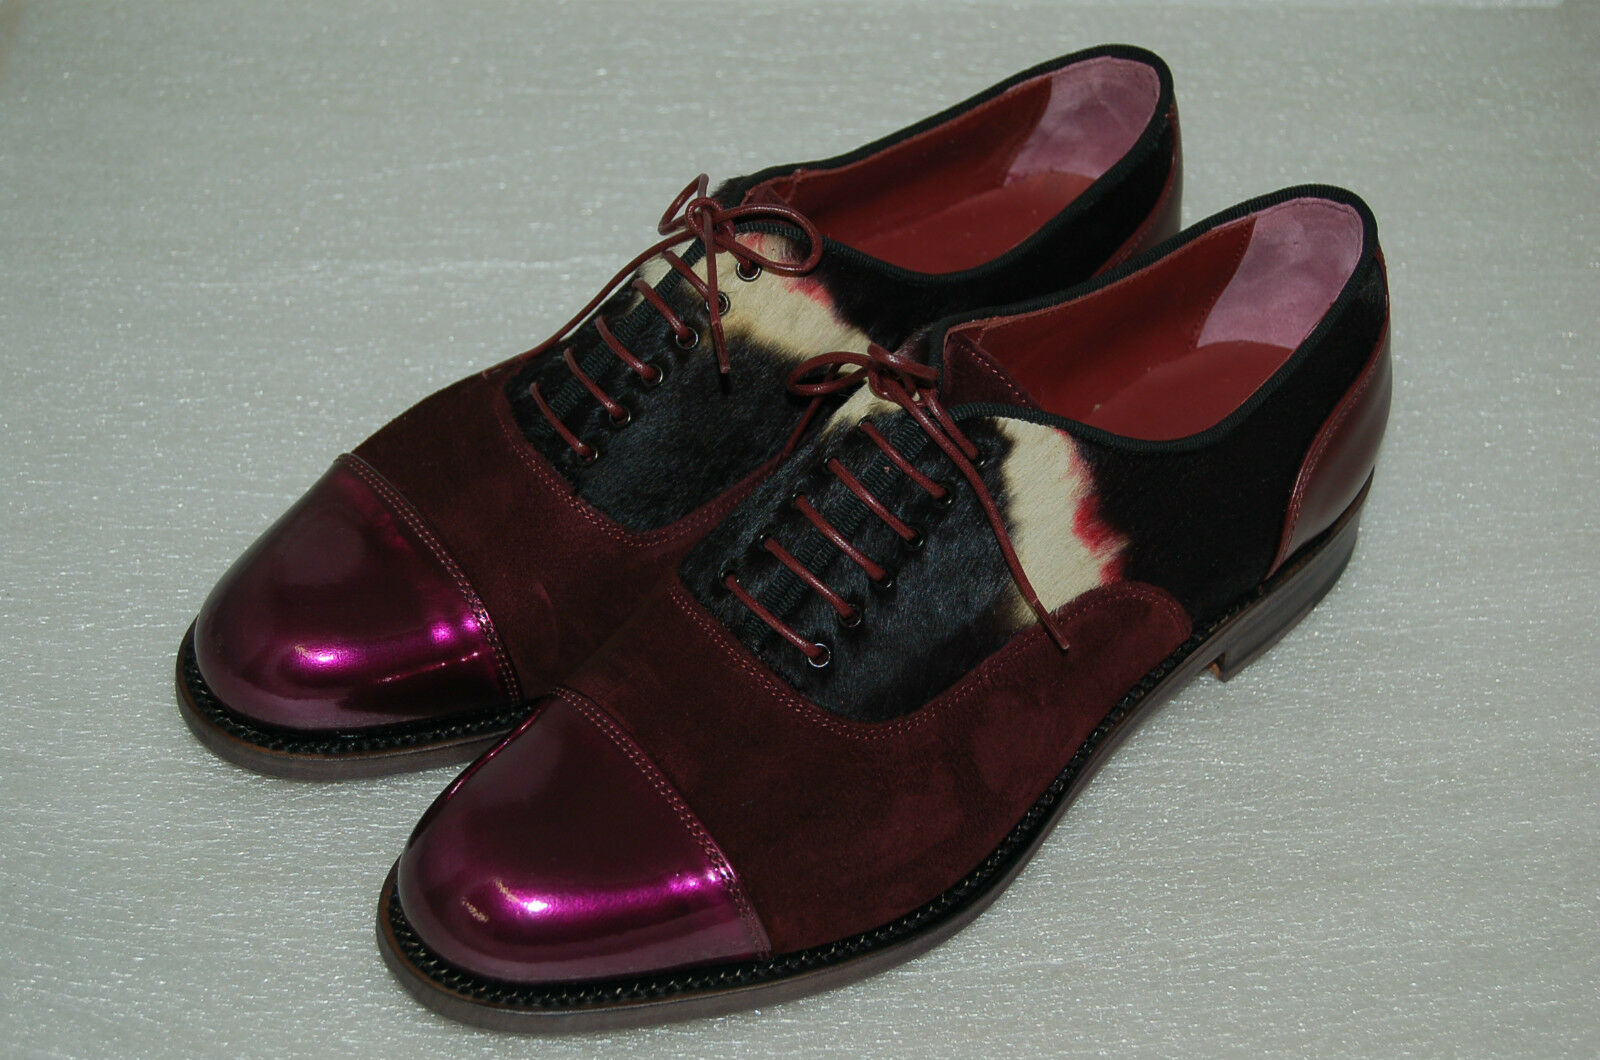 WOMAN CAPTOE PRINTED OXFORD -38eu- BURGUNDY PATENT/SUEDE/ PRINTED CAPTOE PONY- LEATHER SOLE a9f91d